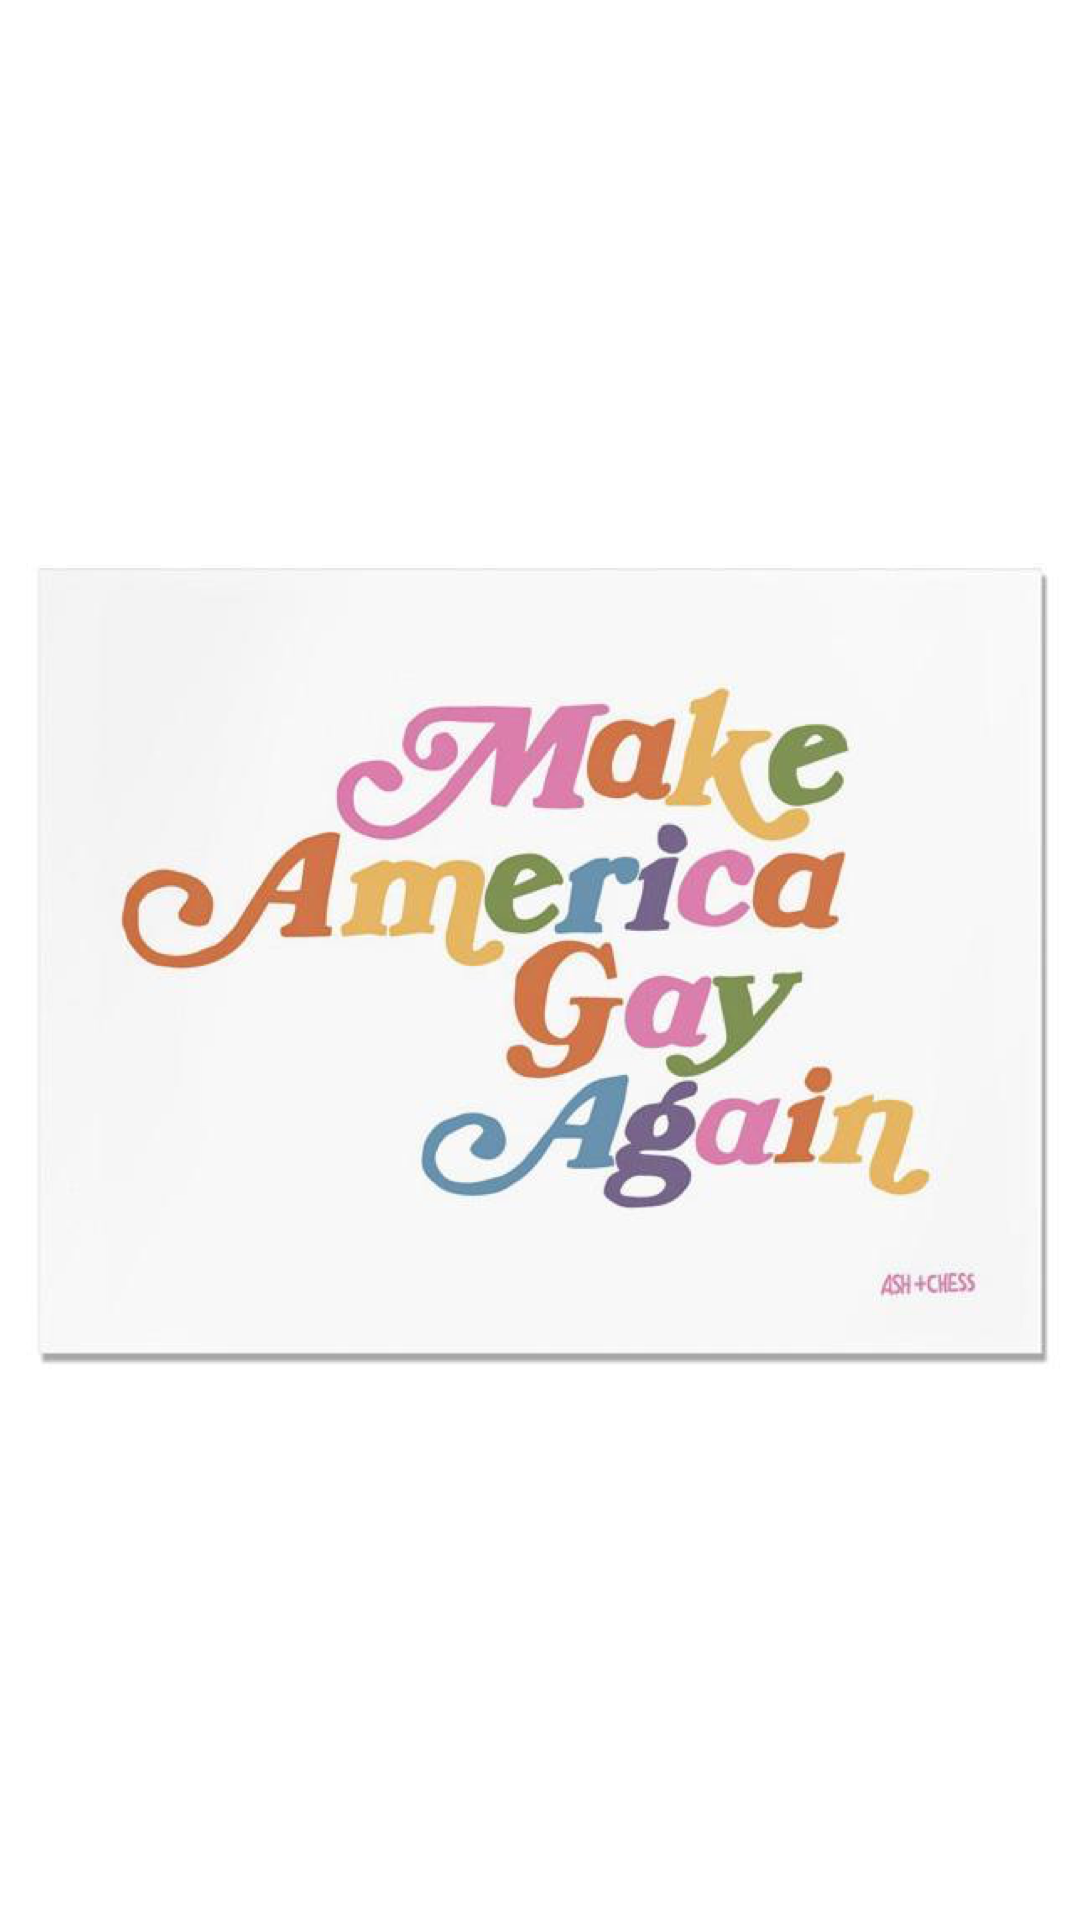 Make America Gay Again Print